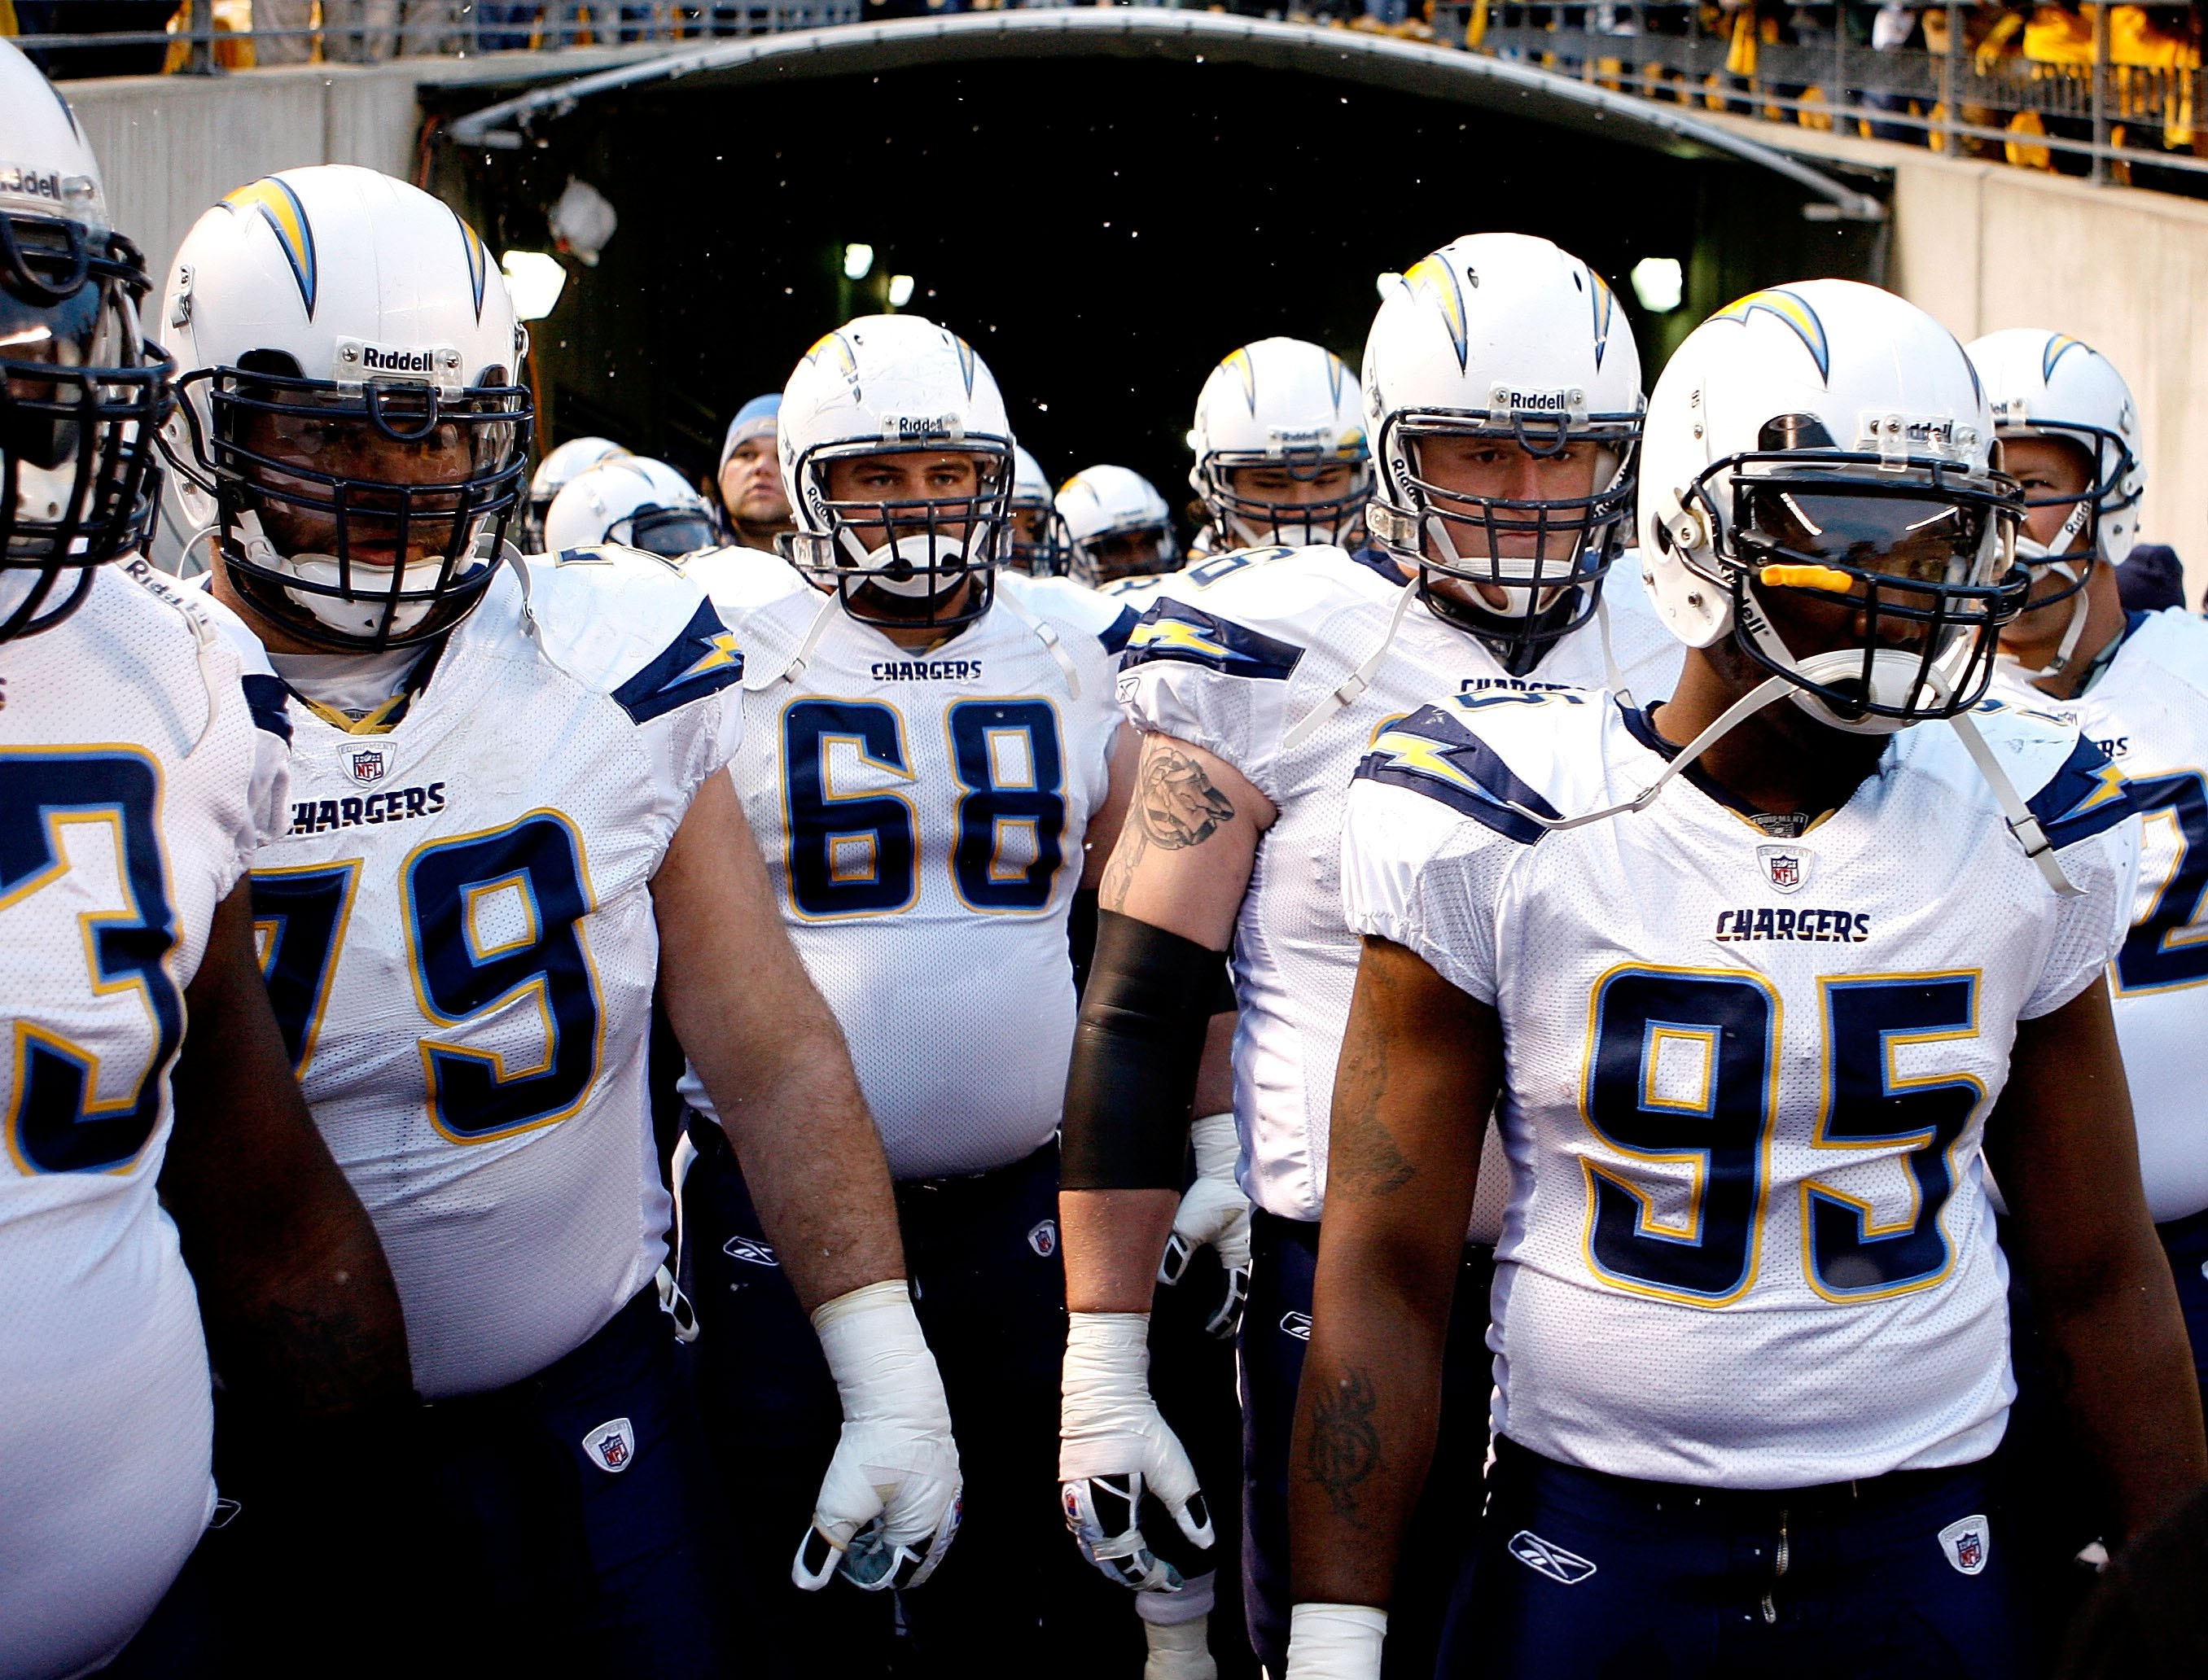 PITTSBURGH - JANUARY 11:  Mike Goff #79, Kris Dielman #68, Jeromey Clary #66 and Shaun Phillips #95 of the San Diego Chargers wait in the tunnel before taking the field against the Pittsburgh Steelers during their AFC Divisional Playoff Game on January 11